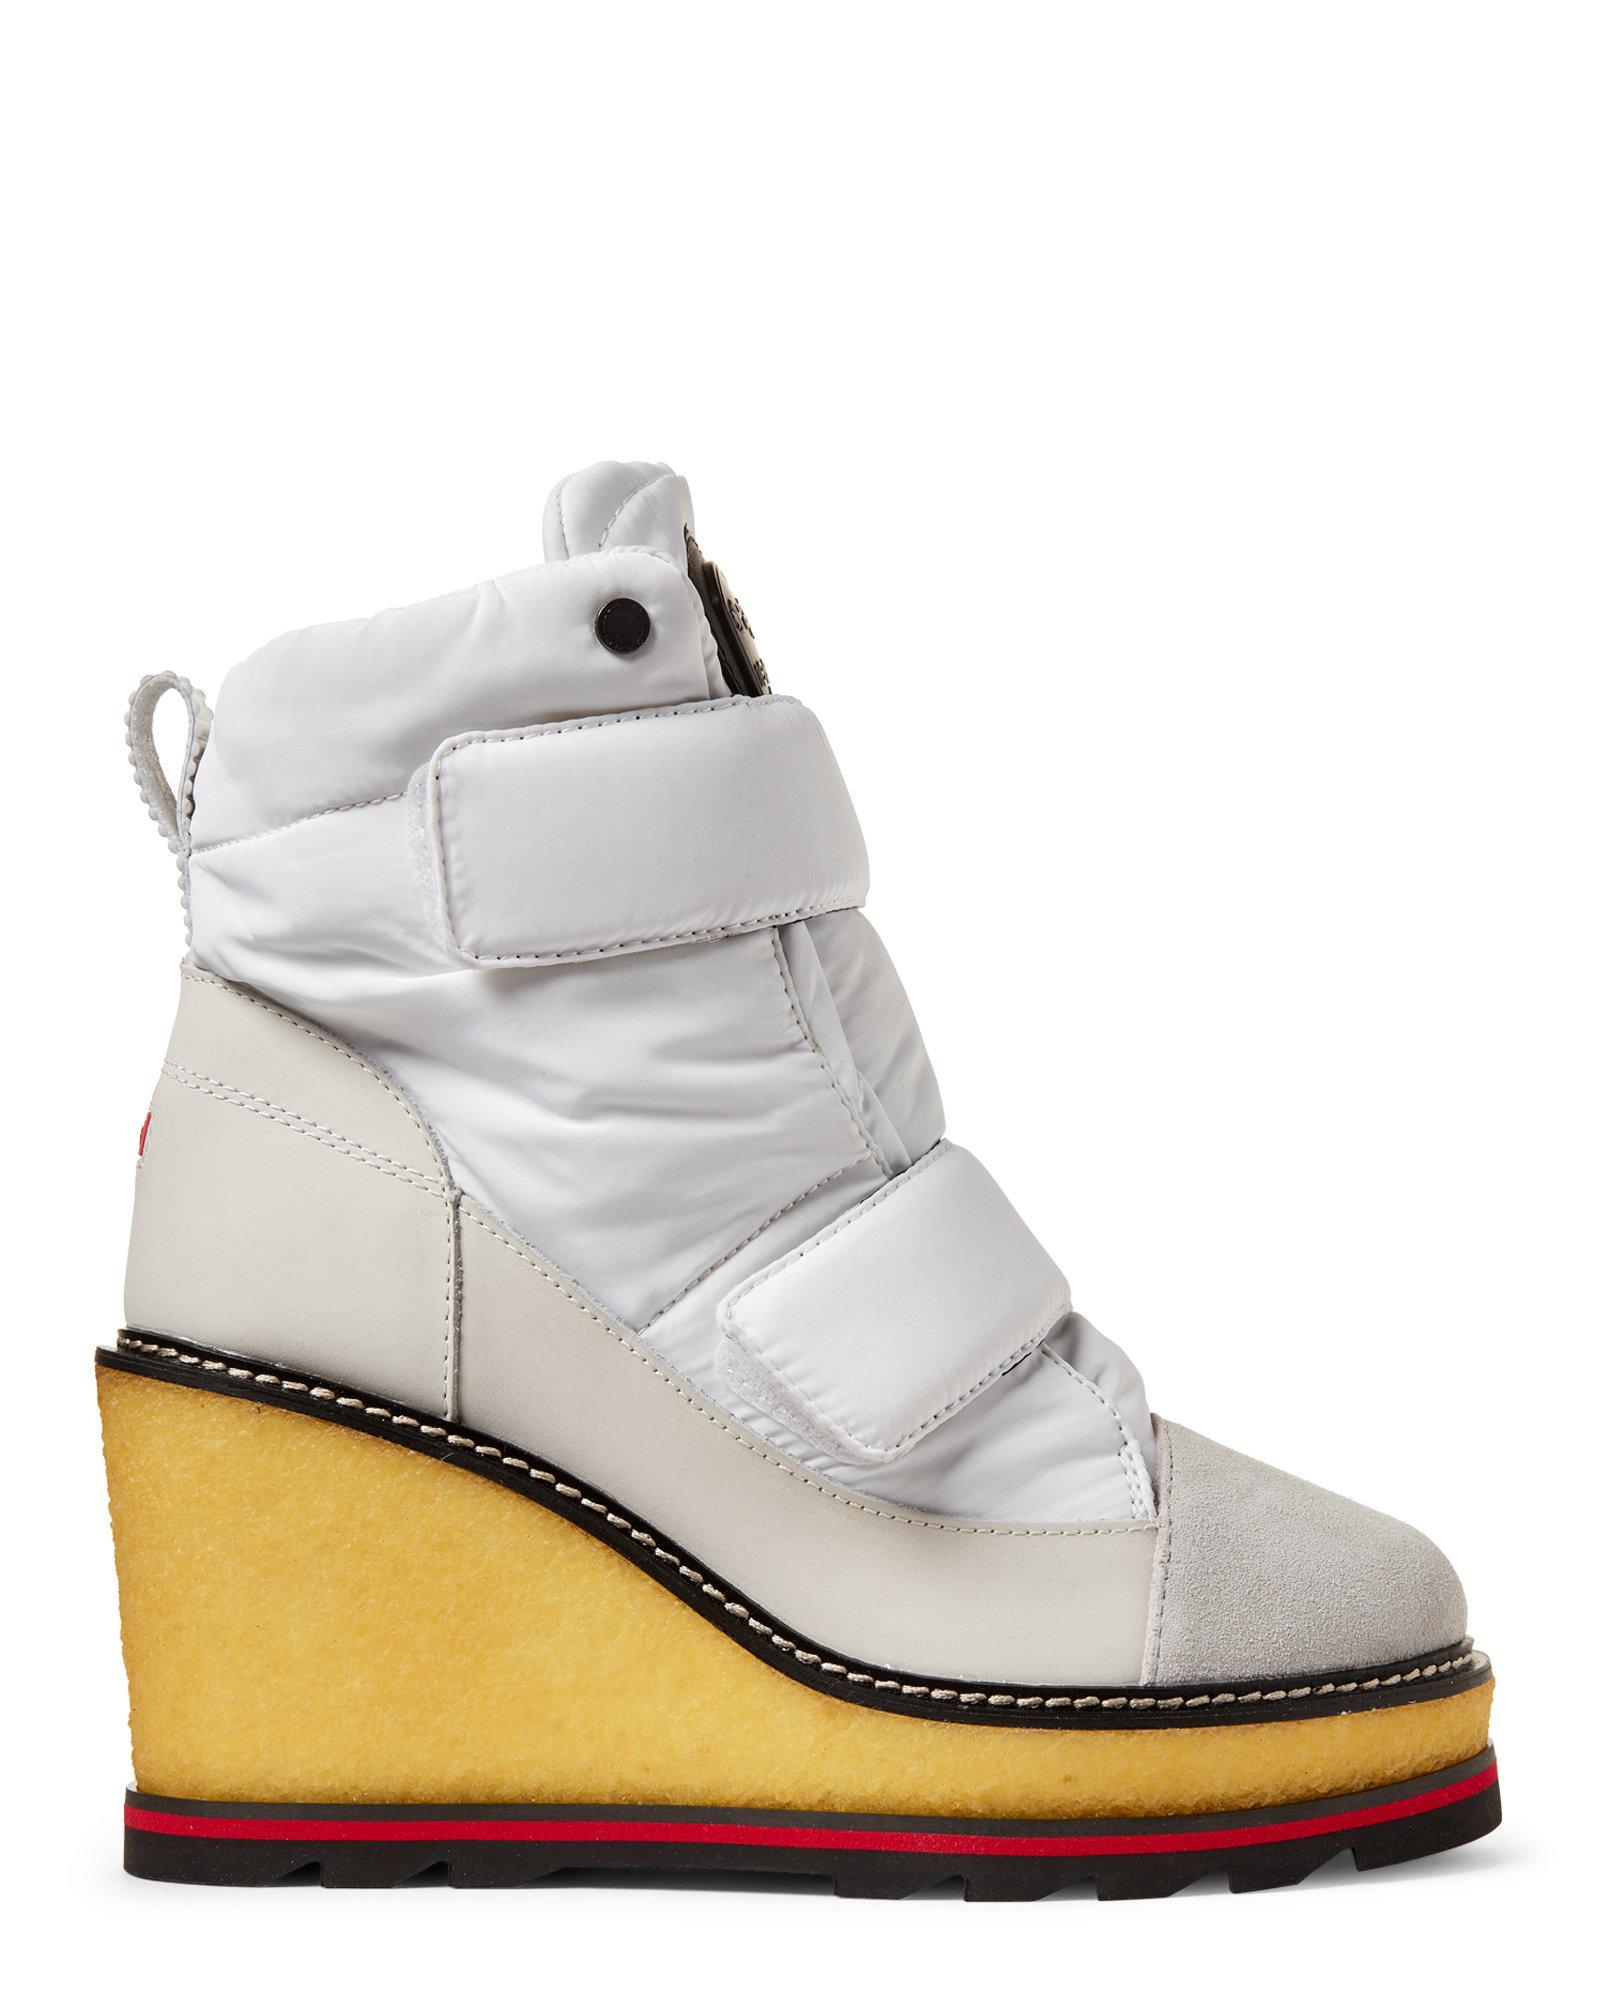 fb5cdd8e82a2 Lyst - Pajar Ice Wedge Theona Boots in White